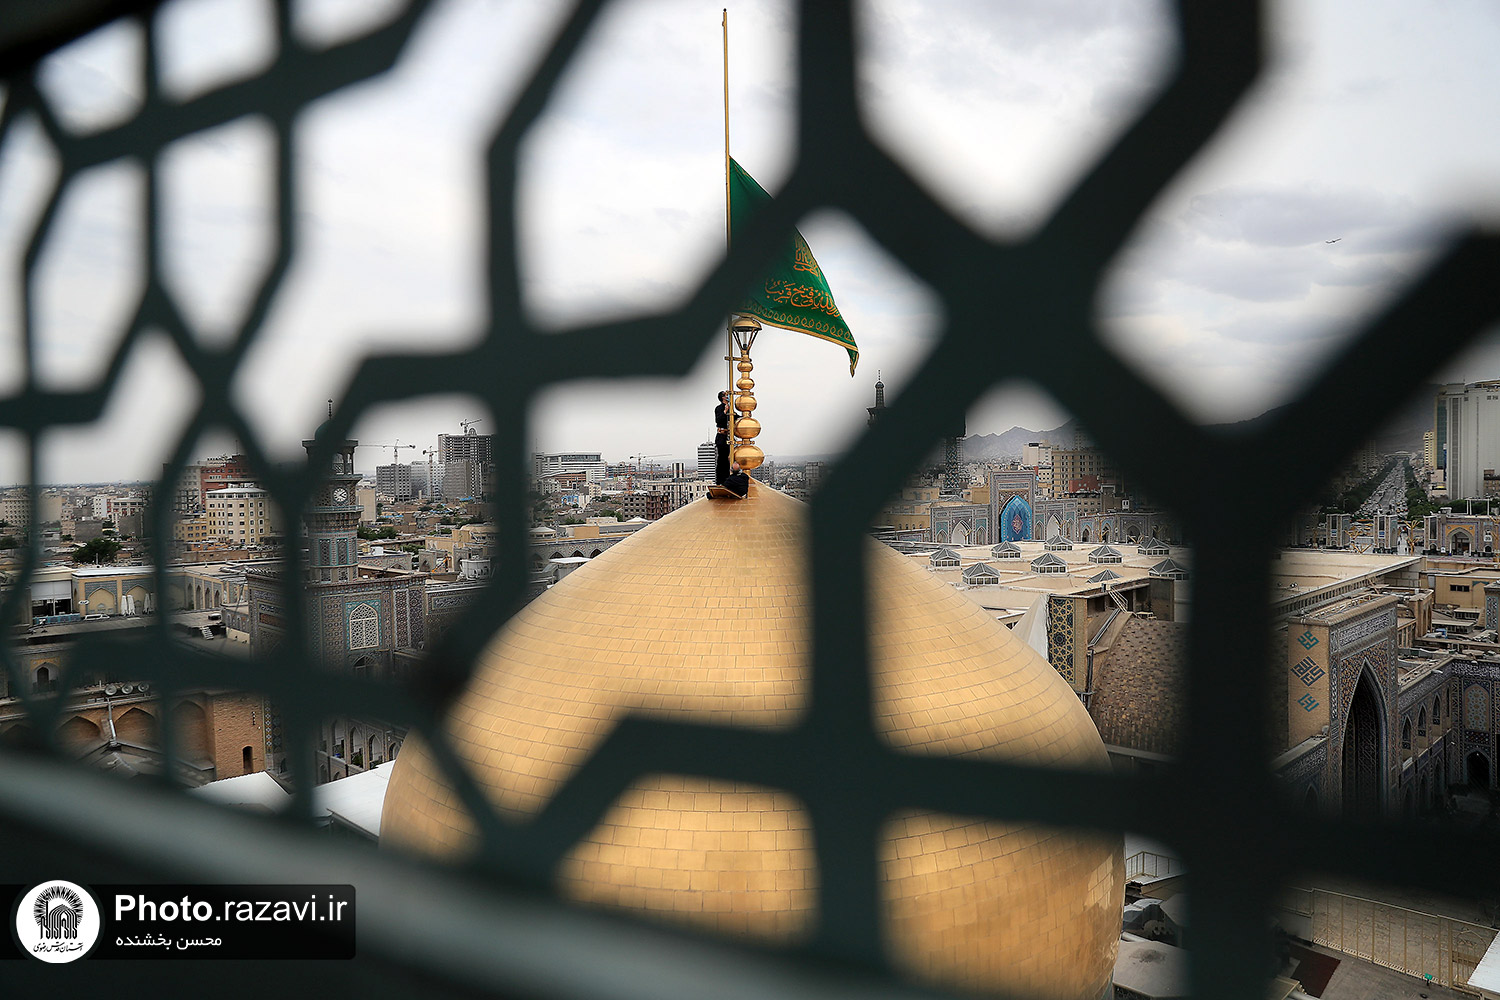 Ceremony of Exchanging Dome Flag on Martyrdom Anniversary of Imam Ali ( AS )